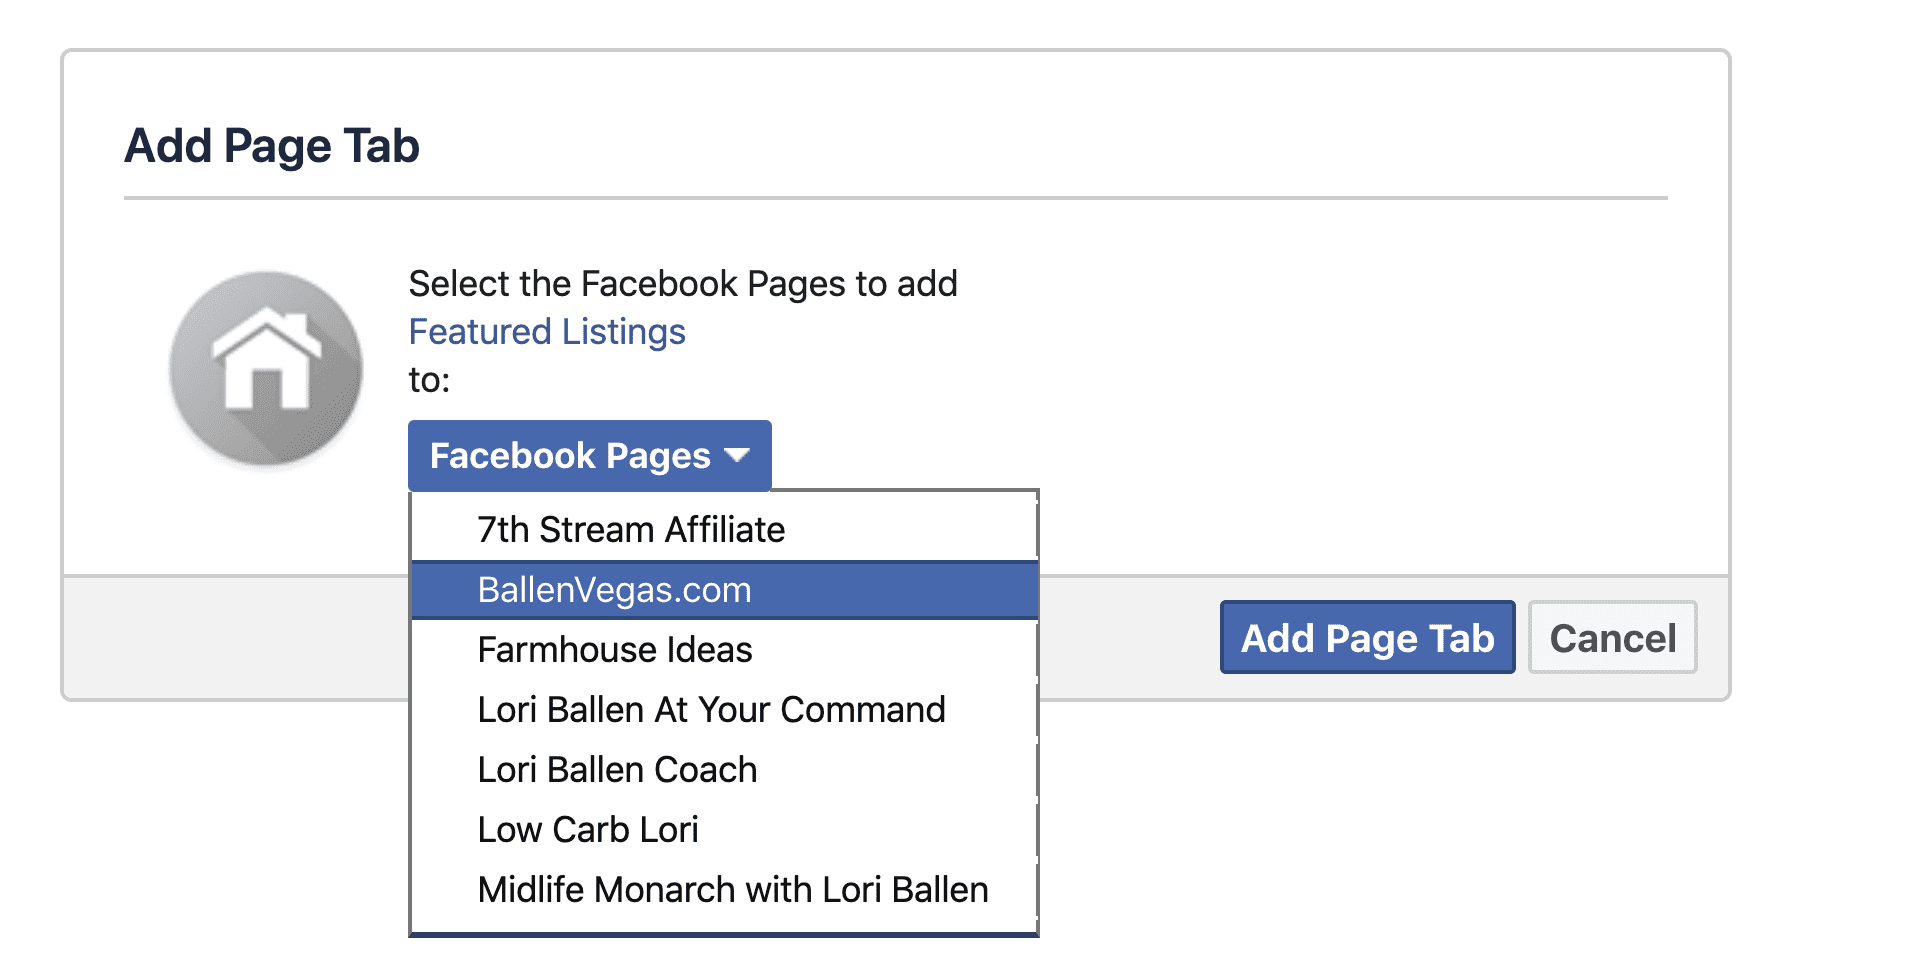 Next, Facebook will open giving you the option to choose which Facebook Page should receive the new IDX Listings Tab.